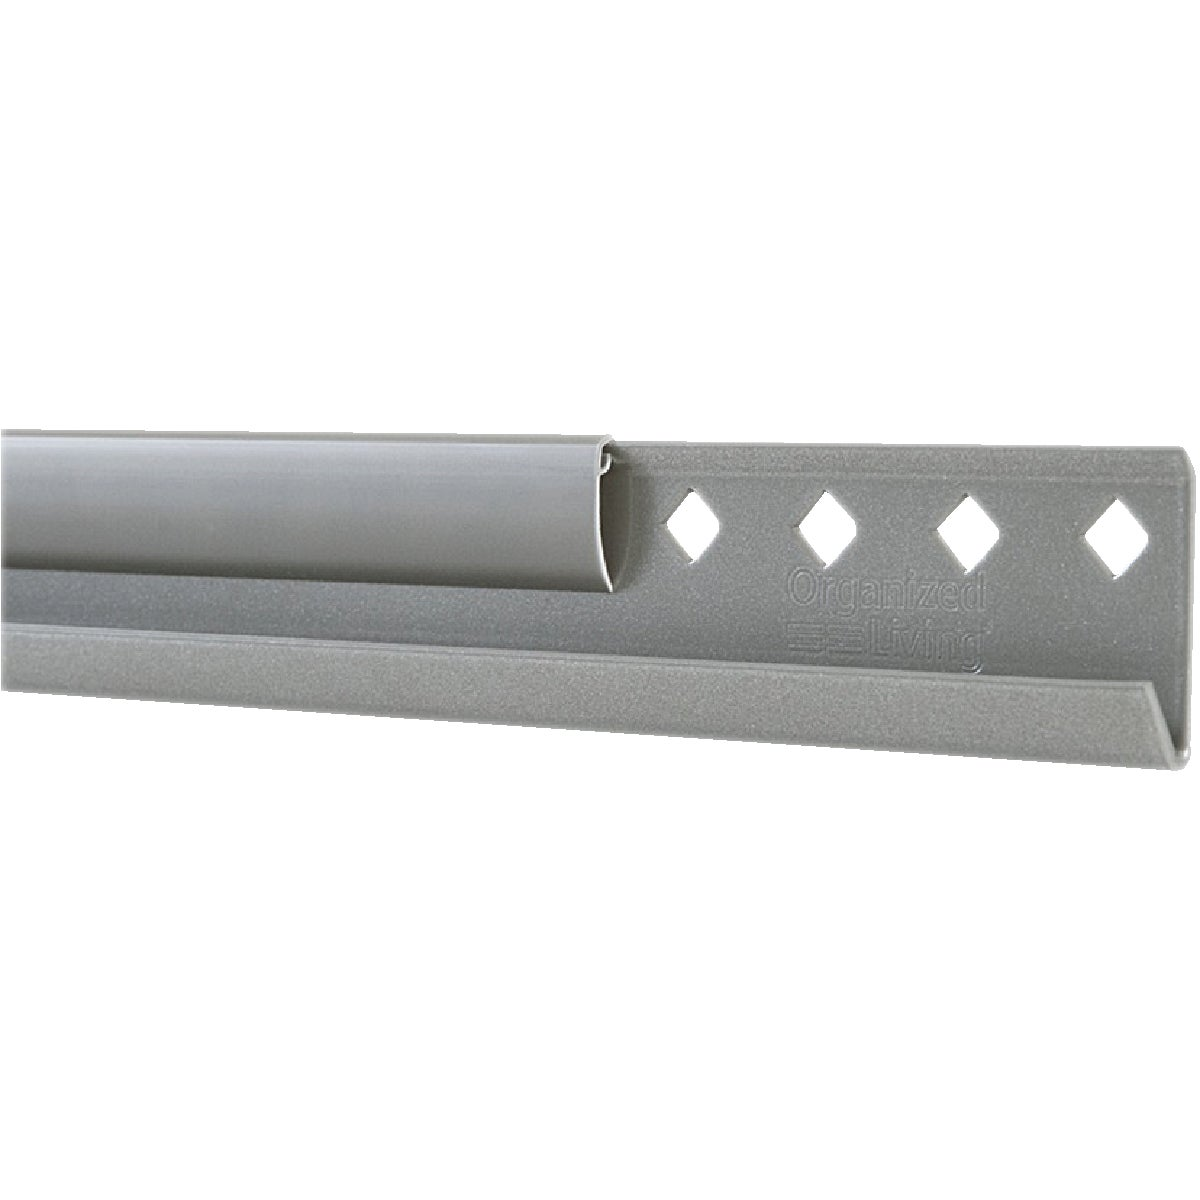 "40"" NICKEL HANGING RAIL - 7913444045 by Schulte Corp"